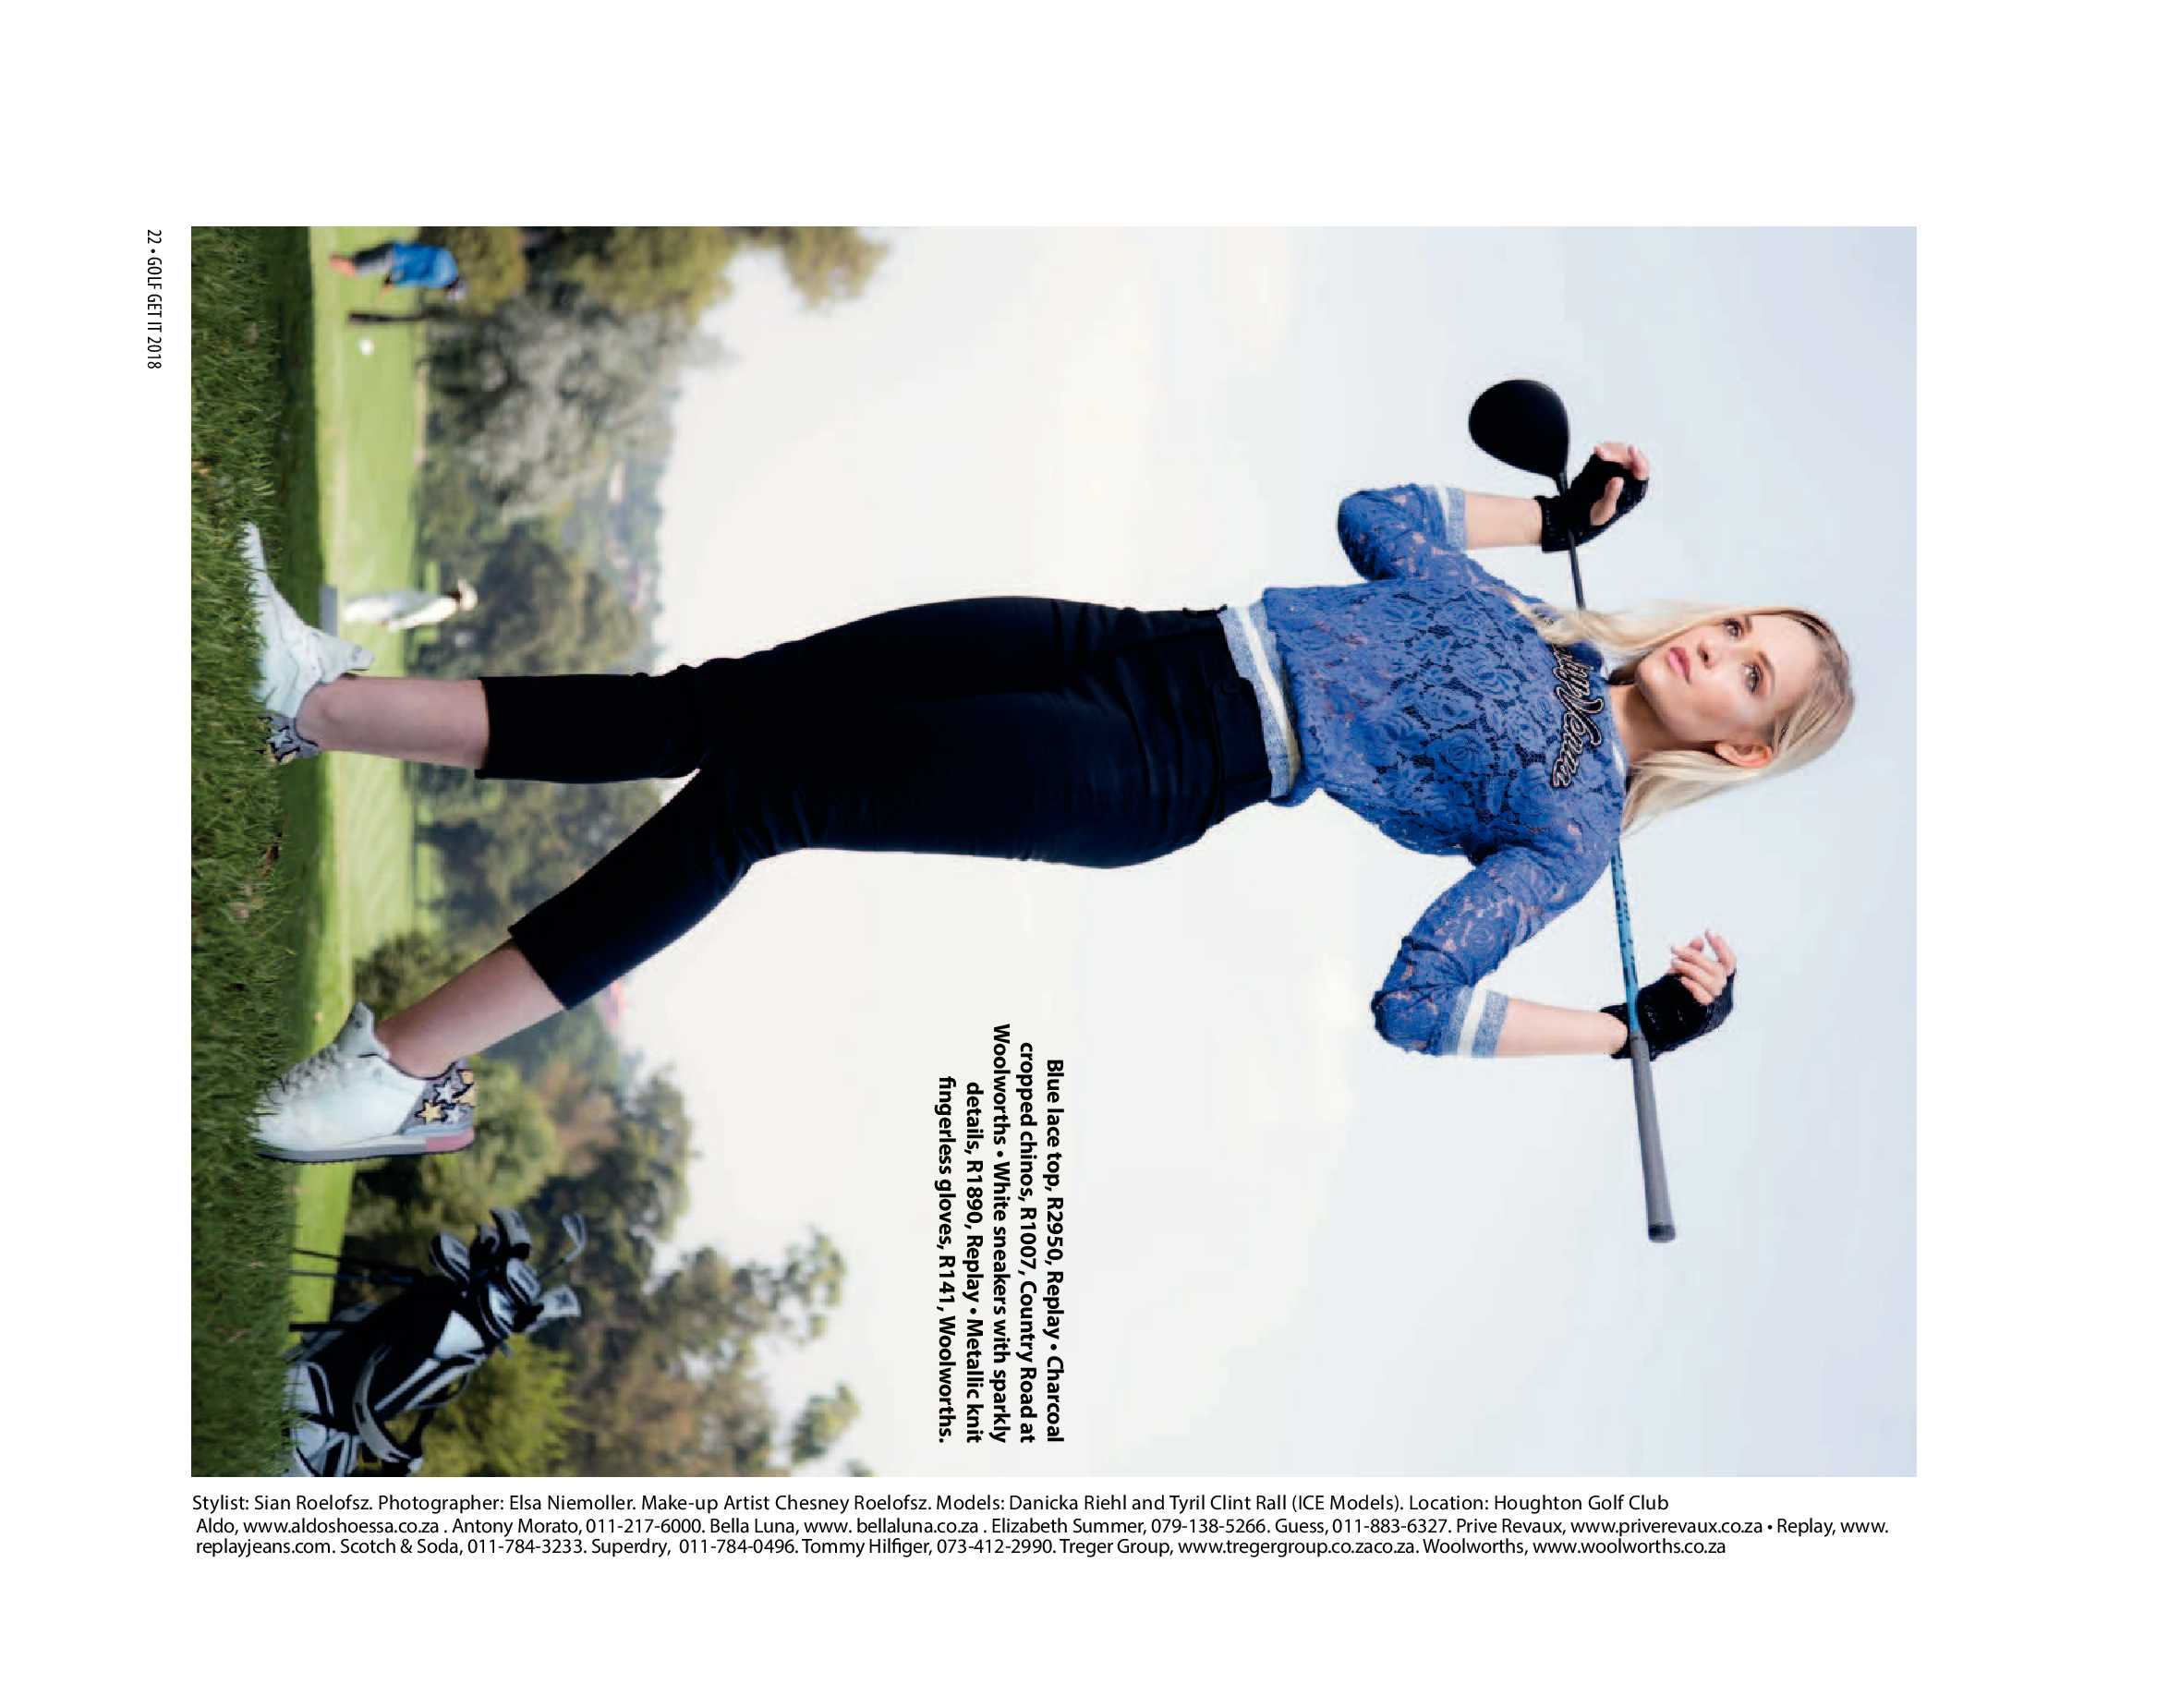 get-it-golf-epapers-page-22